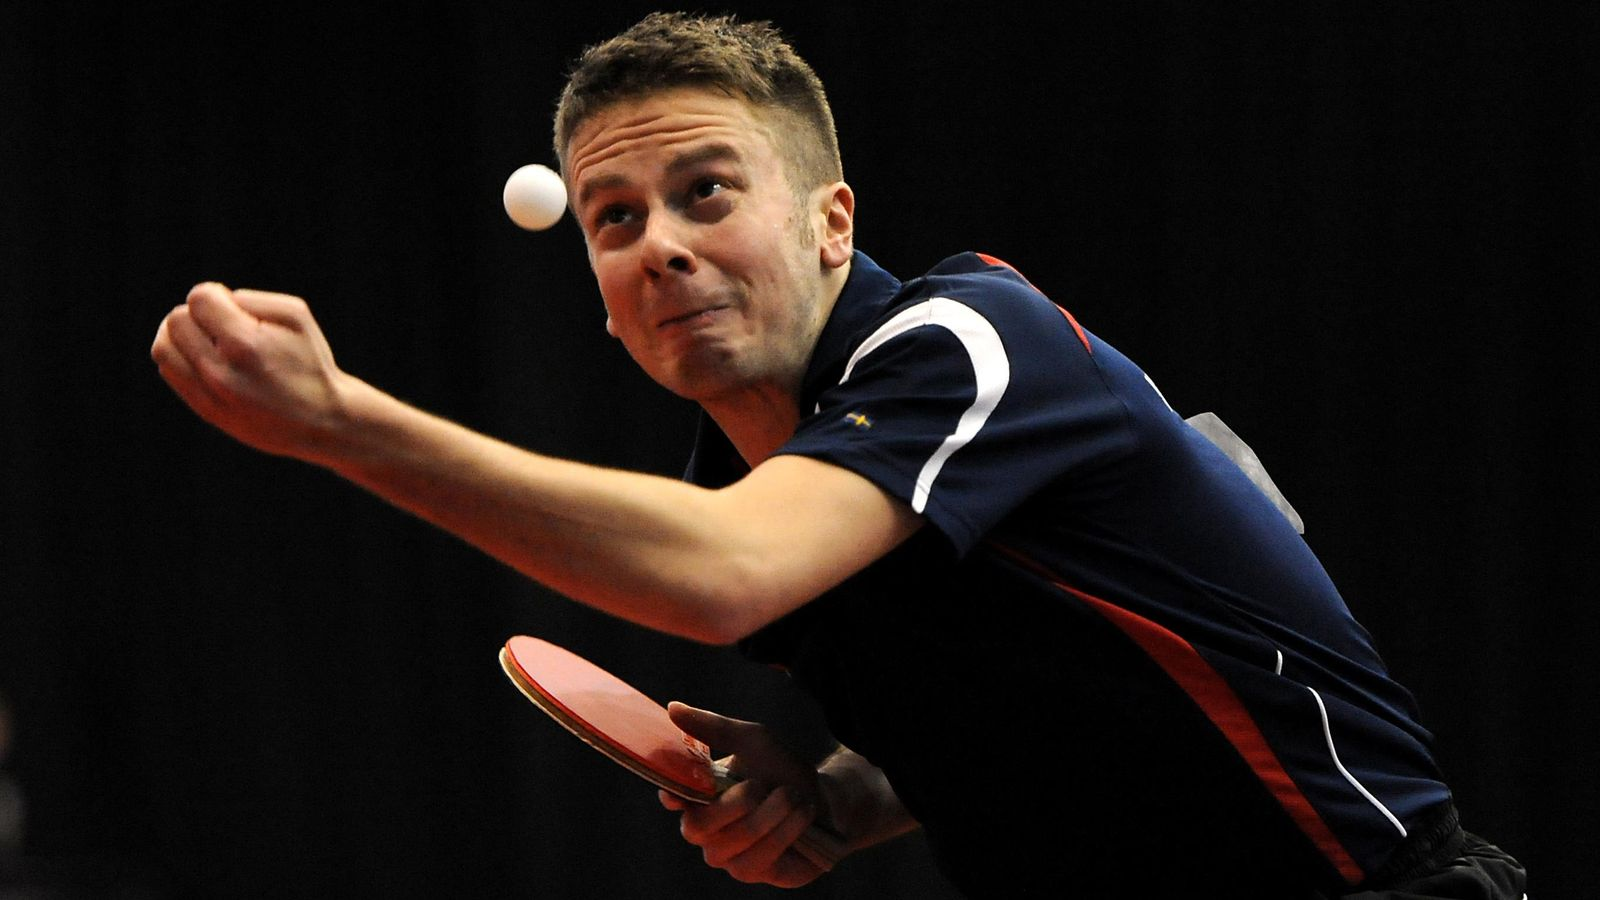 world championship of ping pong betting on sports